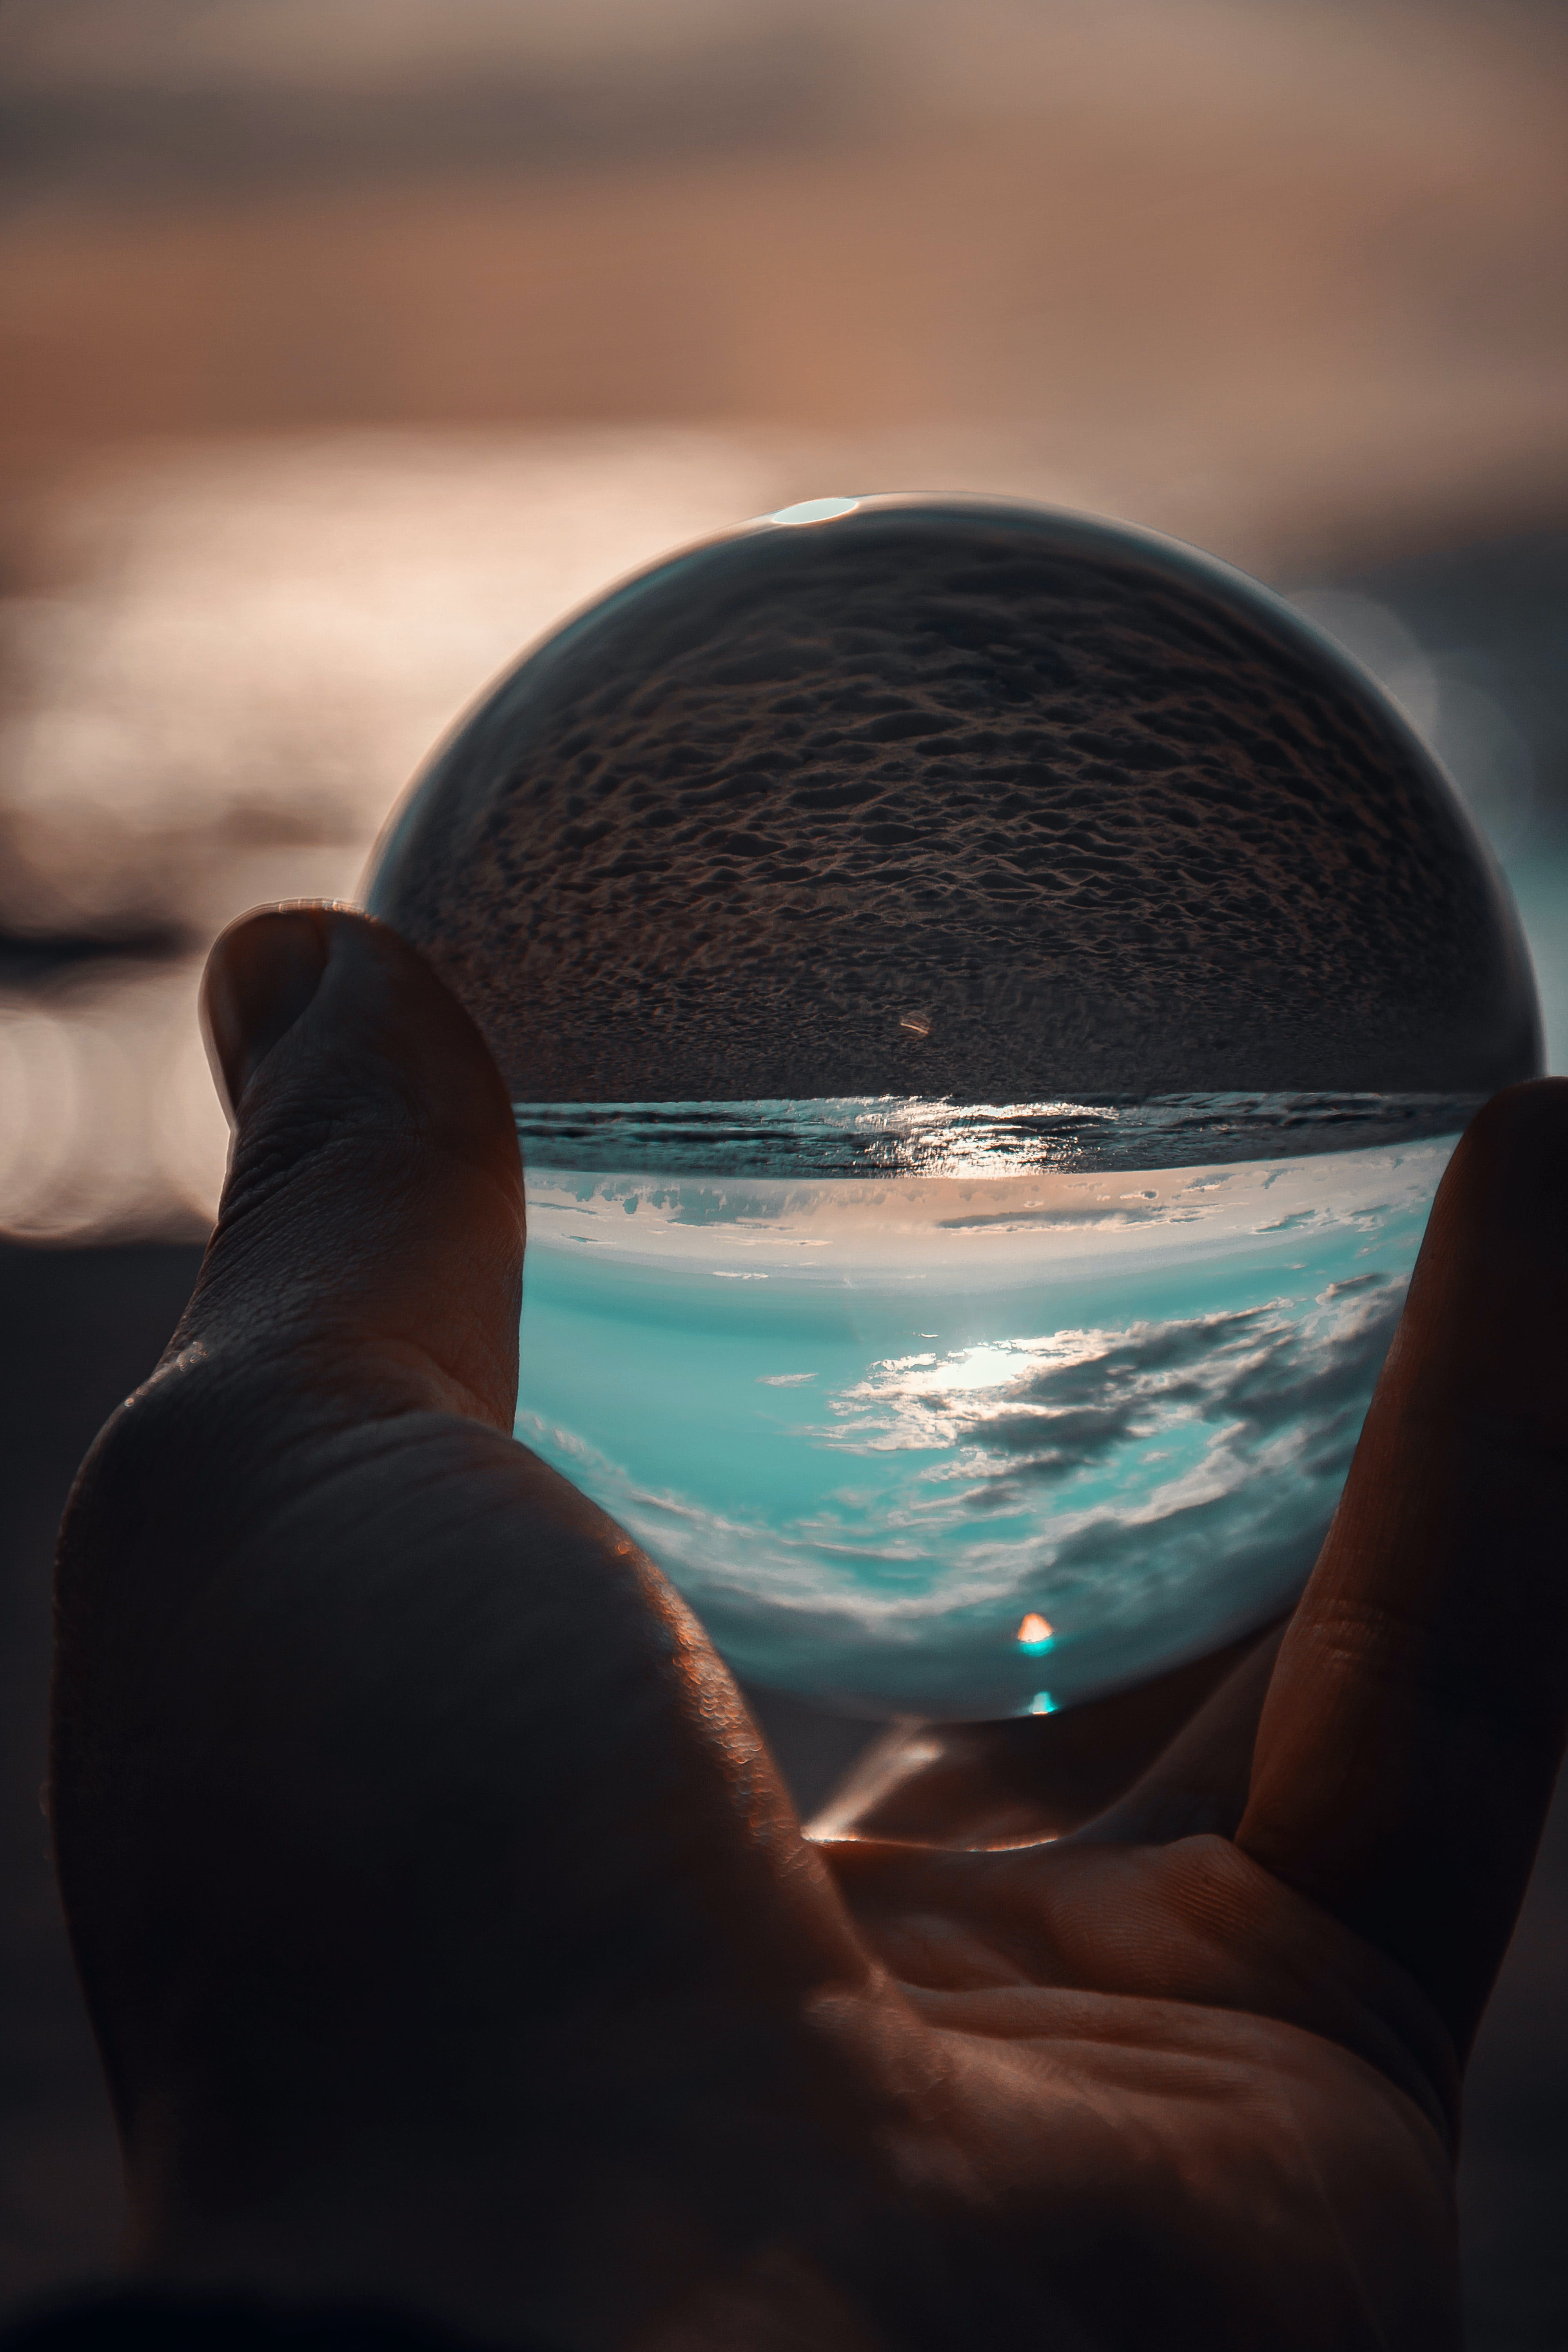 Person Holding Ball Showing Seashore